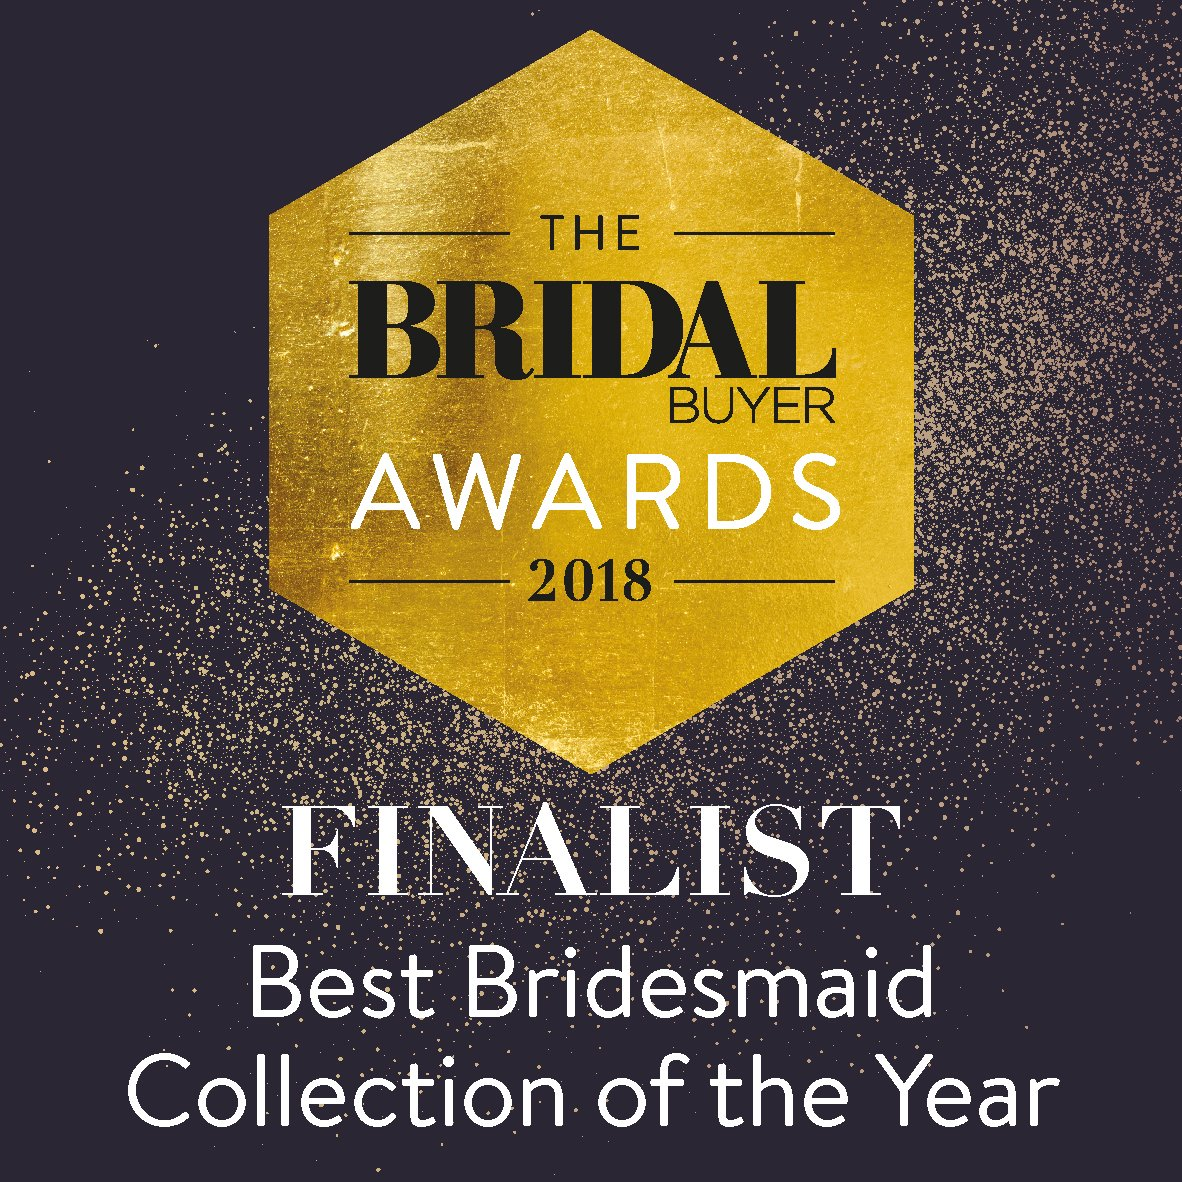 Finalist Best Bridesmaid Collection of the Year 2018